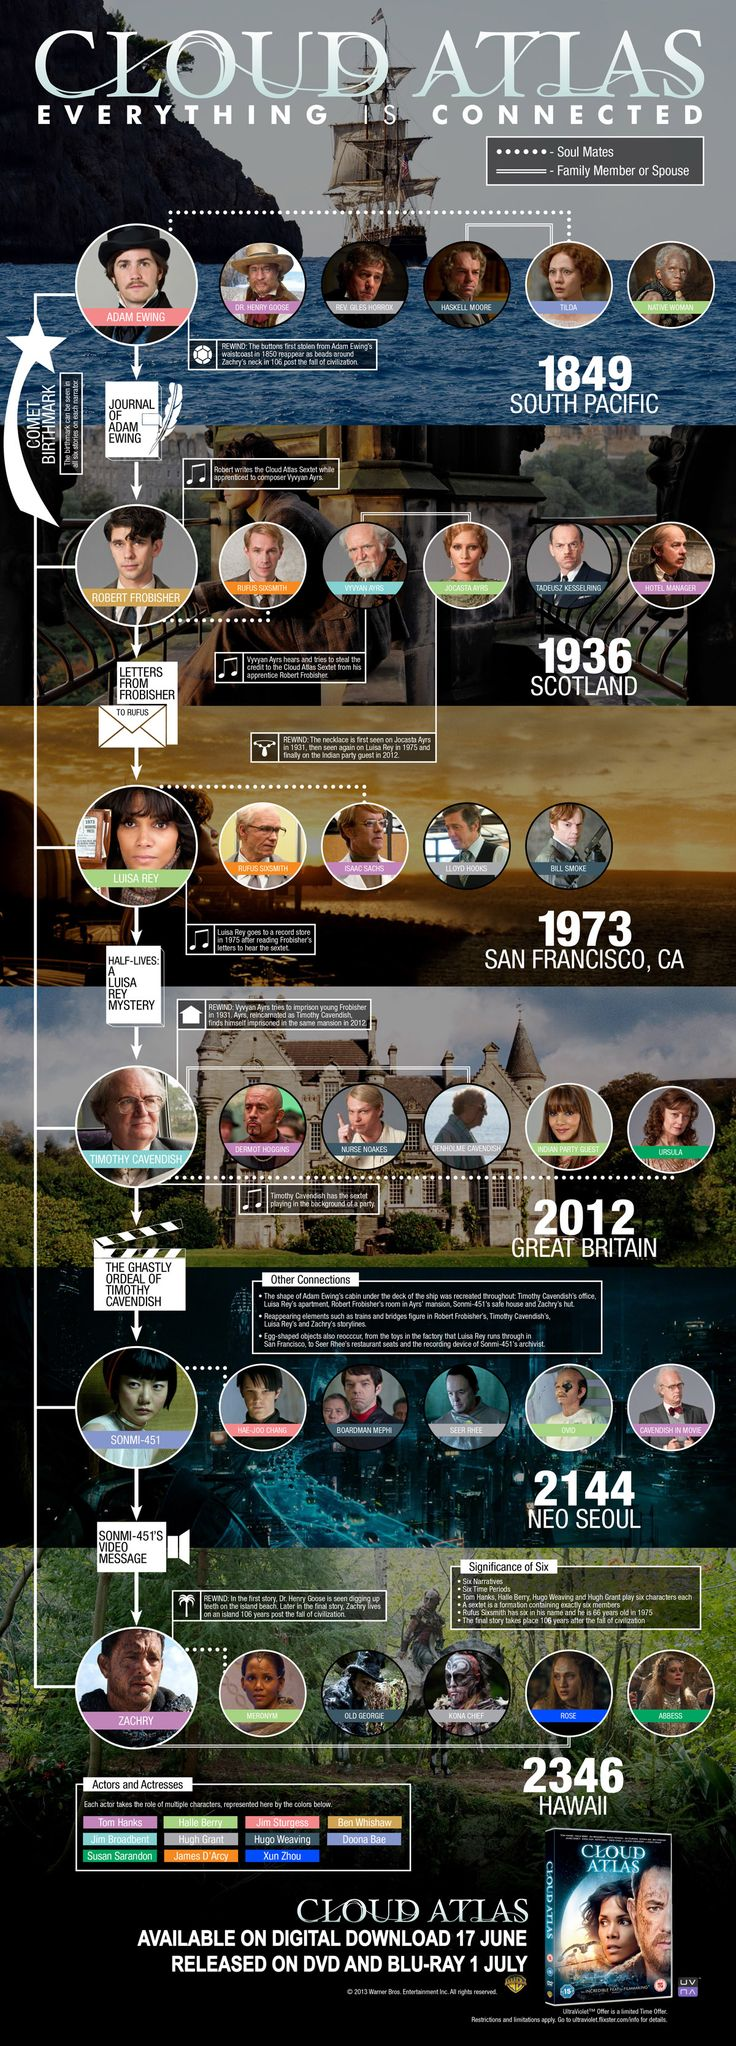 Cloud Atlas Infographic (double-click to enlarge) - Cloud Atlas out on Blu-ray and DVD 1st July 2013  A recently released interview with James, Ben Whishaw and Jim Sturgess:  http://www.sci-fi-london.com/news/blu-ray/2013/06/cloud-alas-cast-interviews